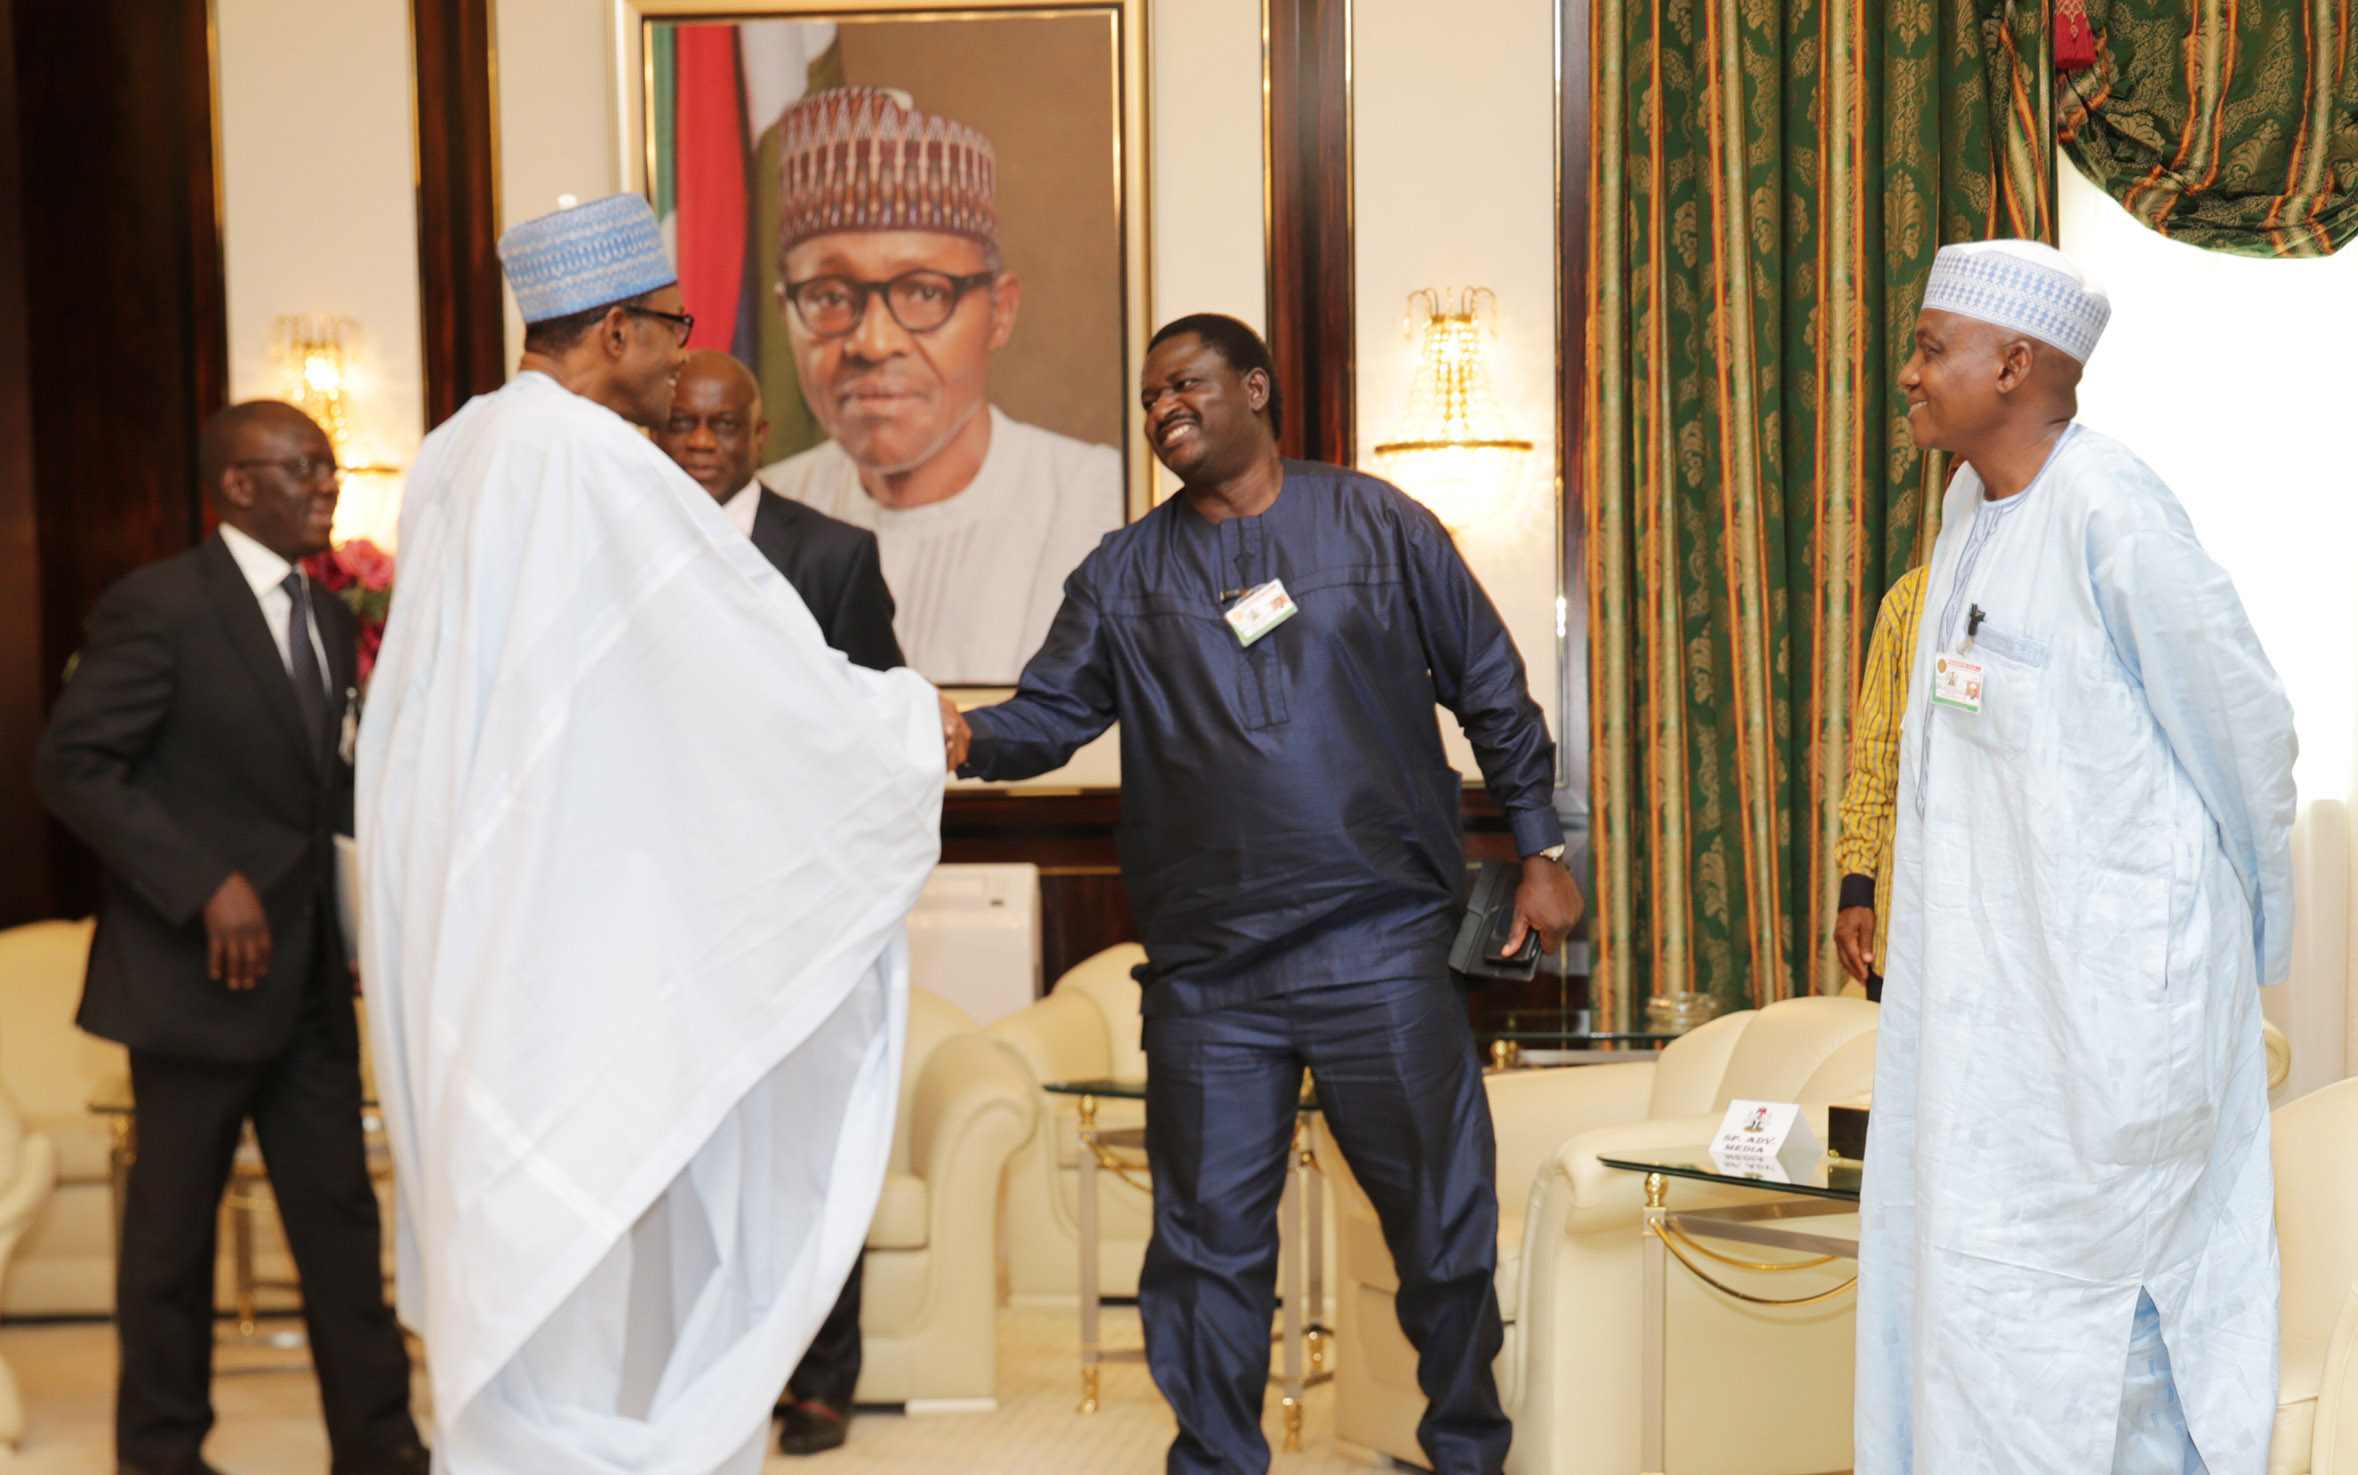 PRESIDENT BUHARI 5. President Muhammadu Buhari in a hand shake with his Senior Adviser on Media and Publicity, Mr Femi Adesina accompanied by Senior Special Assistant on Media and Publicity , Mallam Shehu Garba at the Presidential Villa in Abuja. PHOTO; OFFICE OF THE PRESIDENT JUNE 25 2015